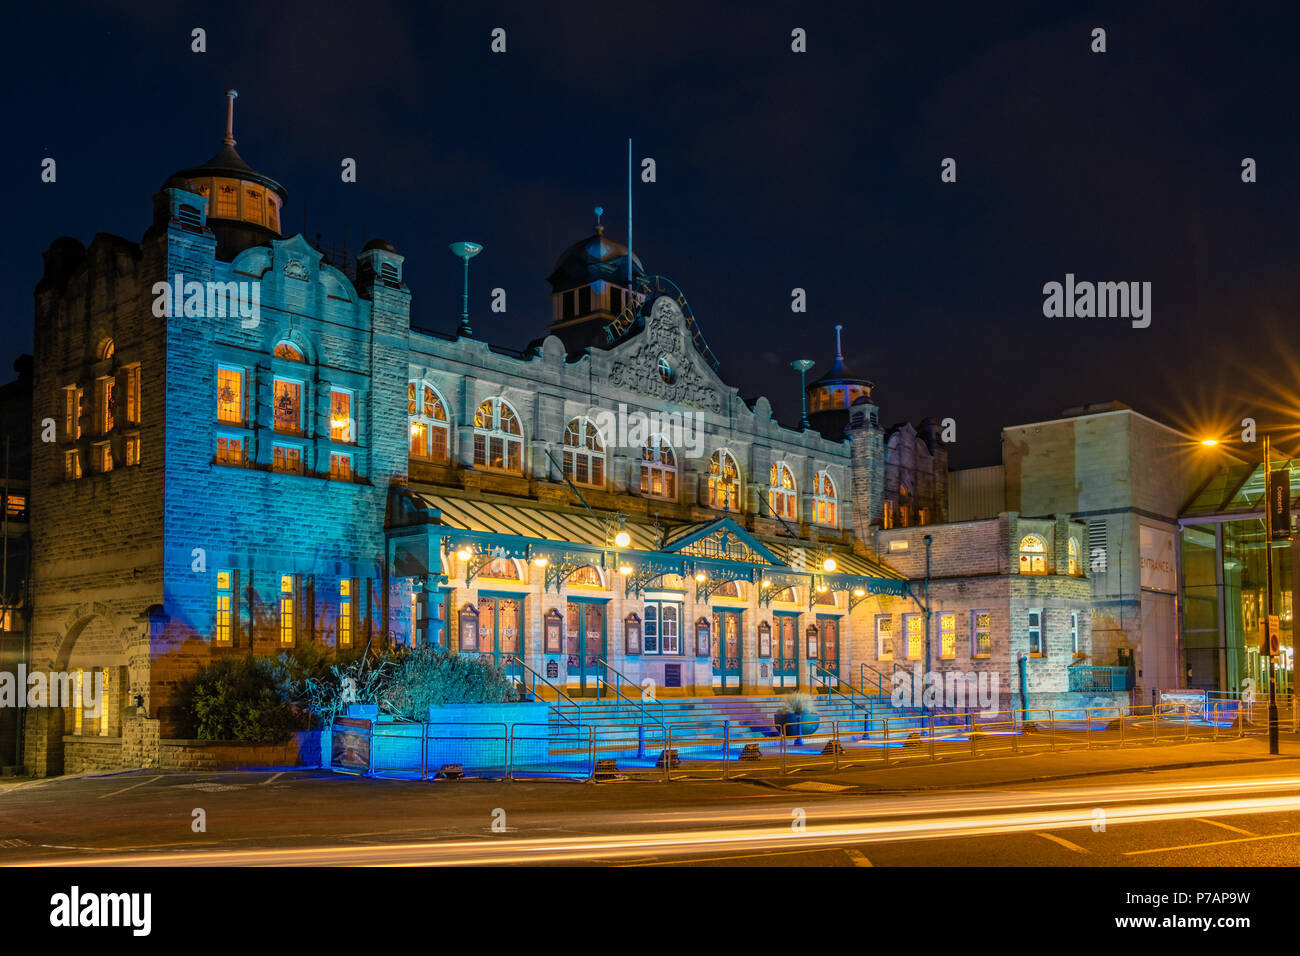 Royal Hall, Harrogate, North Yorkshire, UK - 5 July 2018: The Royal Hall in Harrogate, North Yorkshire, UK, lit up in blue to celebrate the 70th birthday of the NHS. Caught Light Photography/Alamy Live News - Stock Image